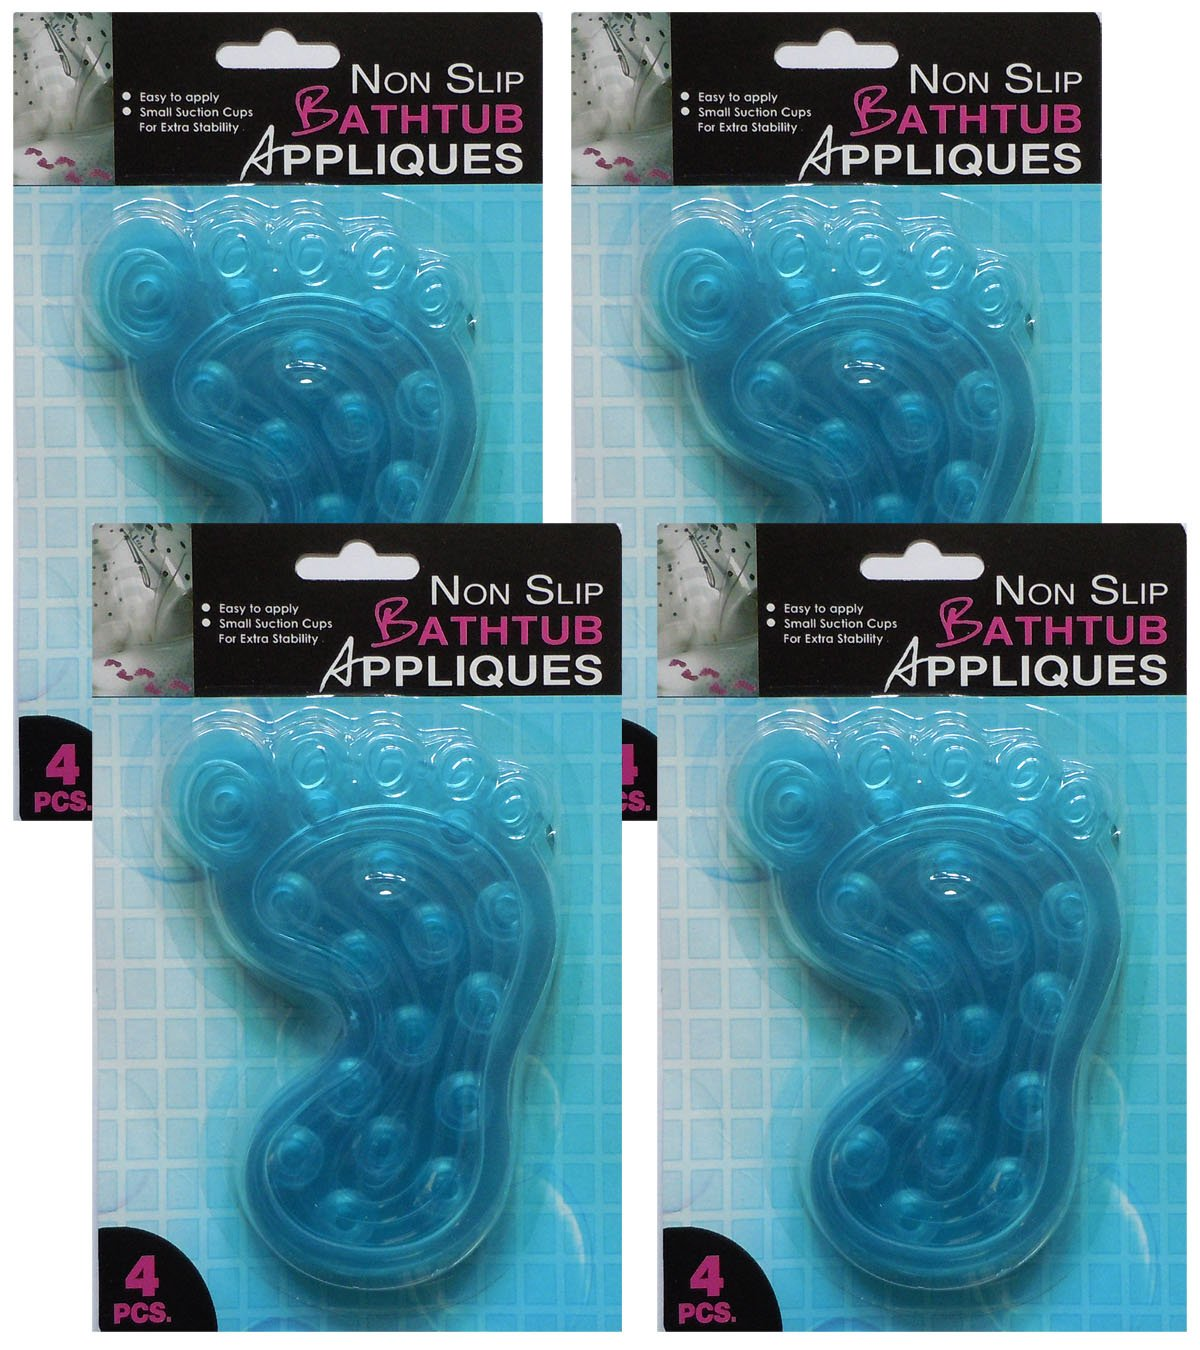 Non Slip Bathtub Appliques with Suction Cups for Added Stability, Blue Feet Mats Easy to Apply and Remove (16 Pack)